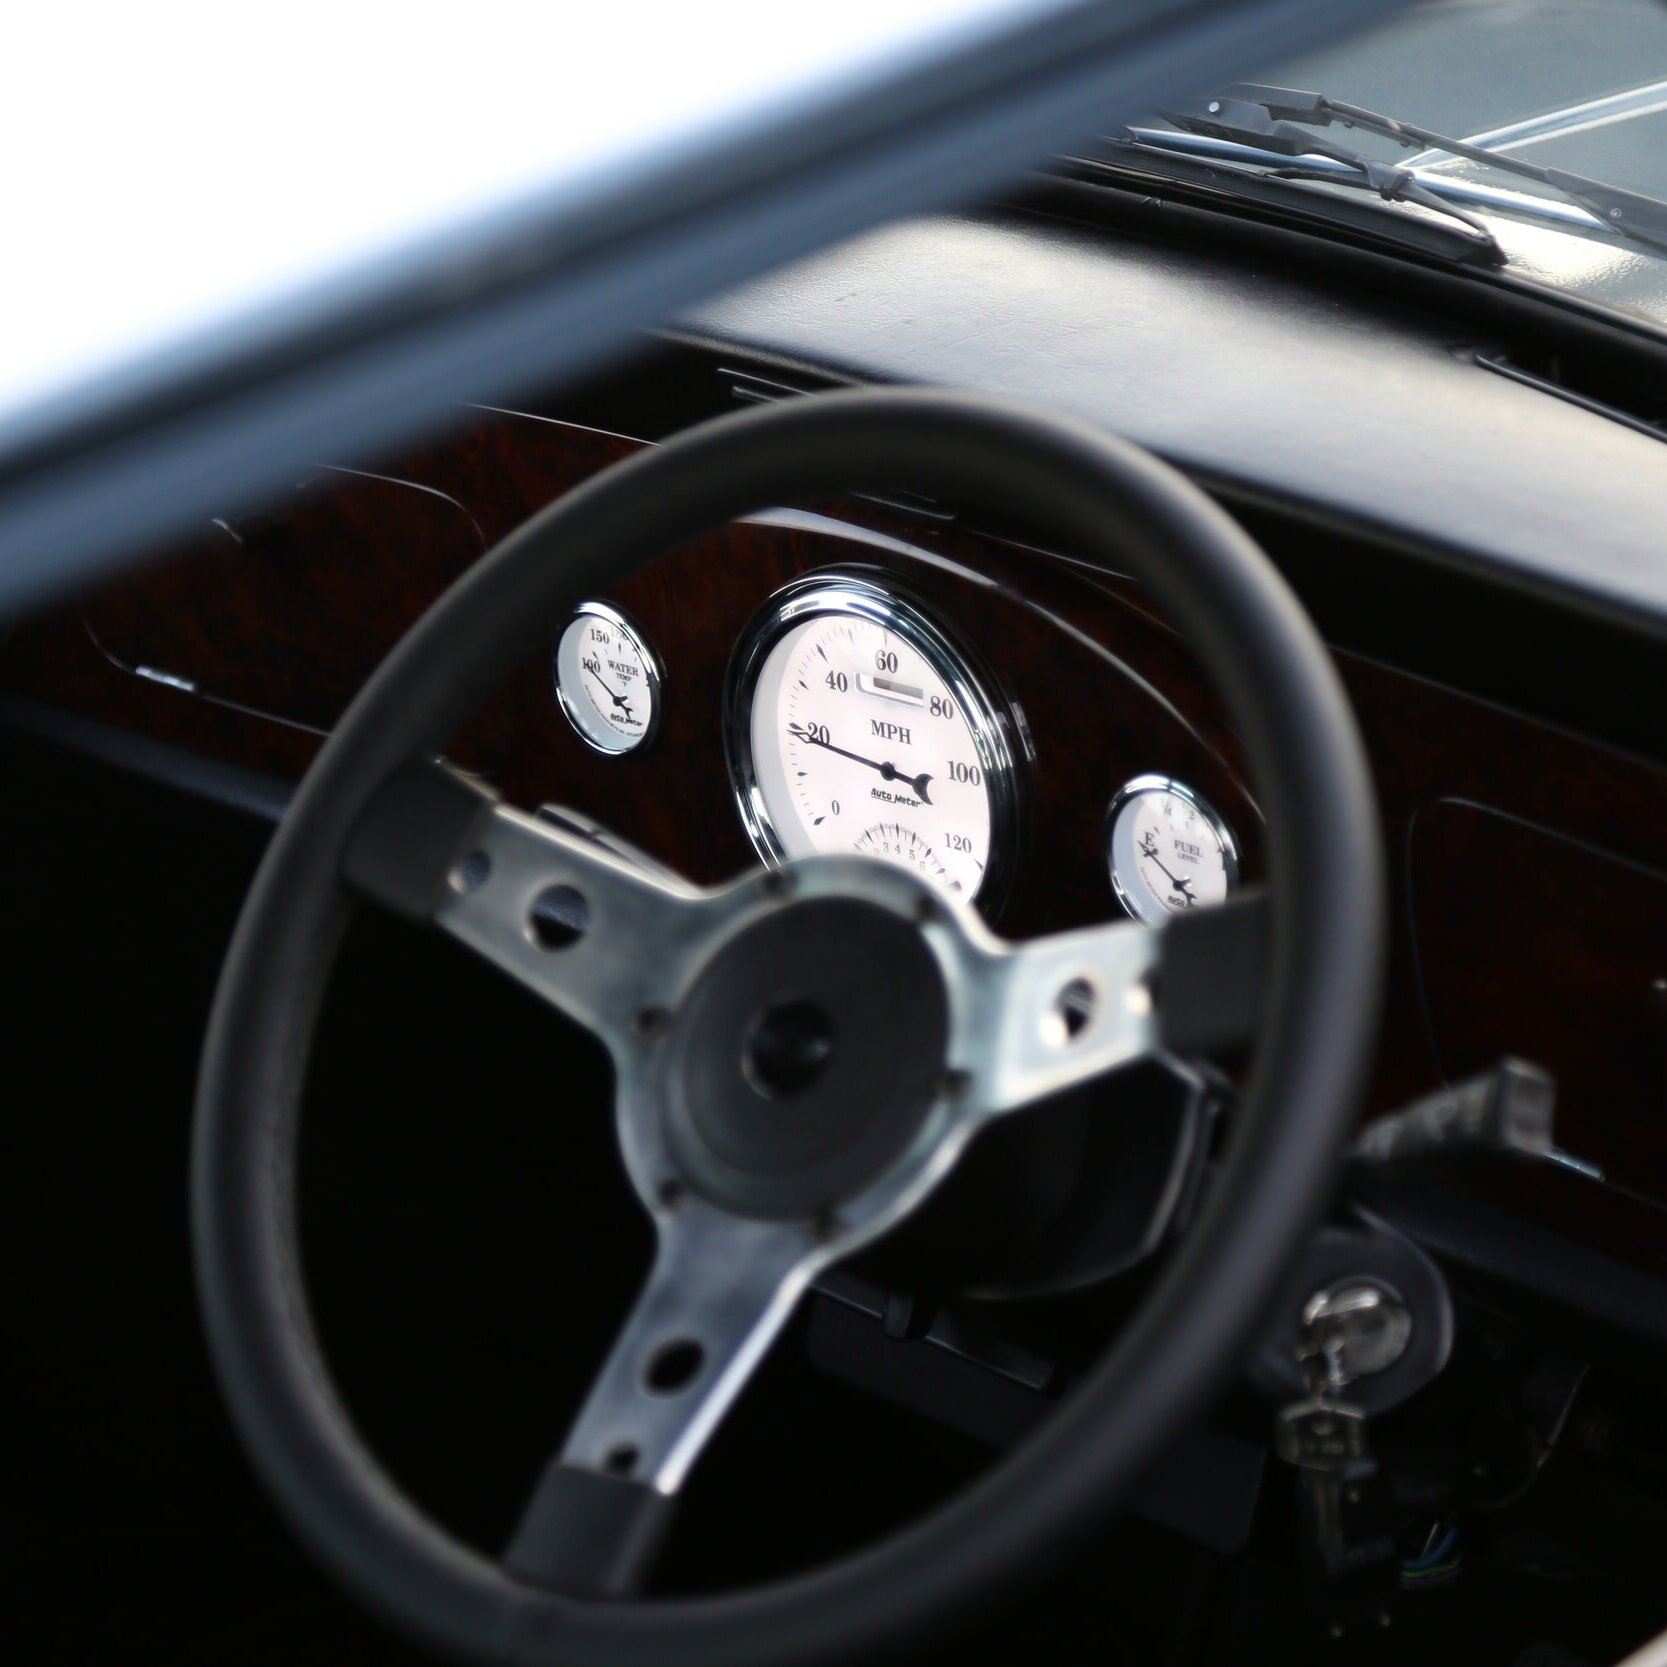 MK3 Sport interior shown with Padded dash and Center binnacle gauge cluster.